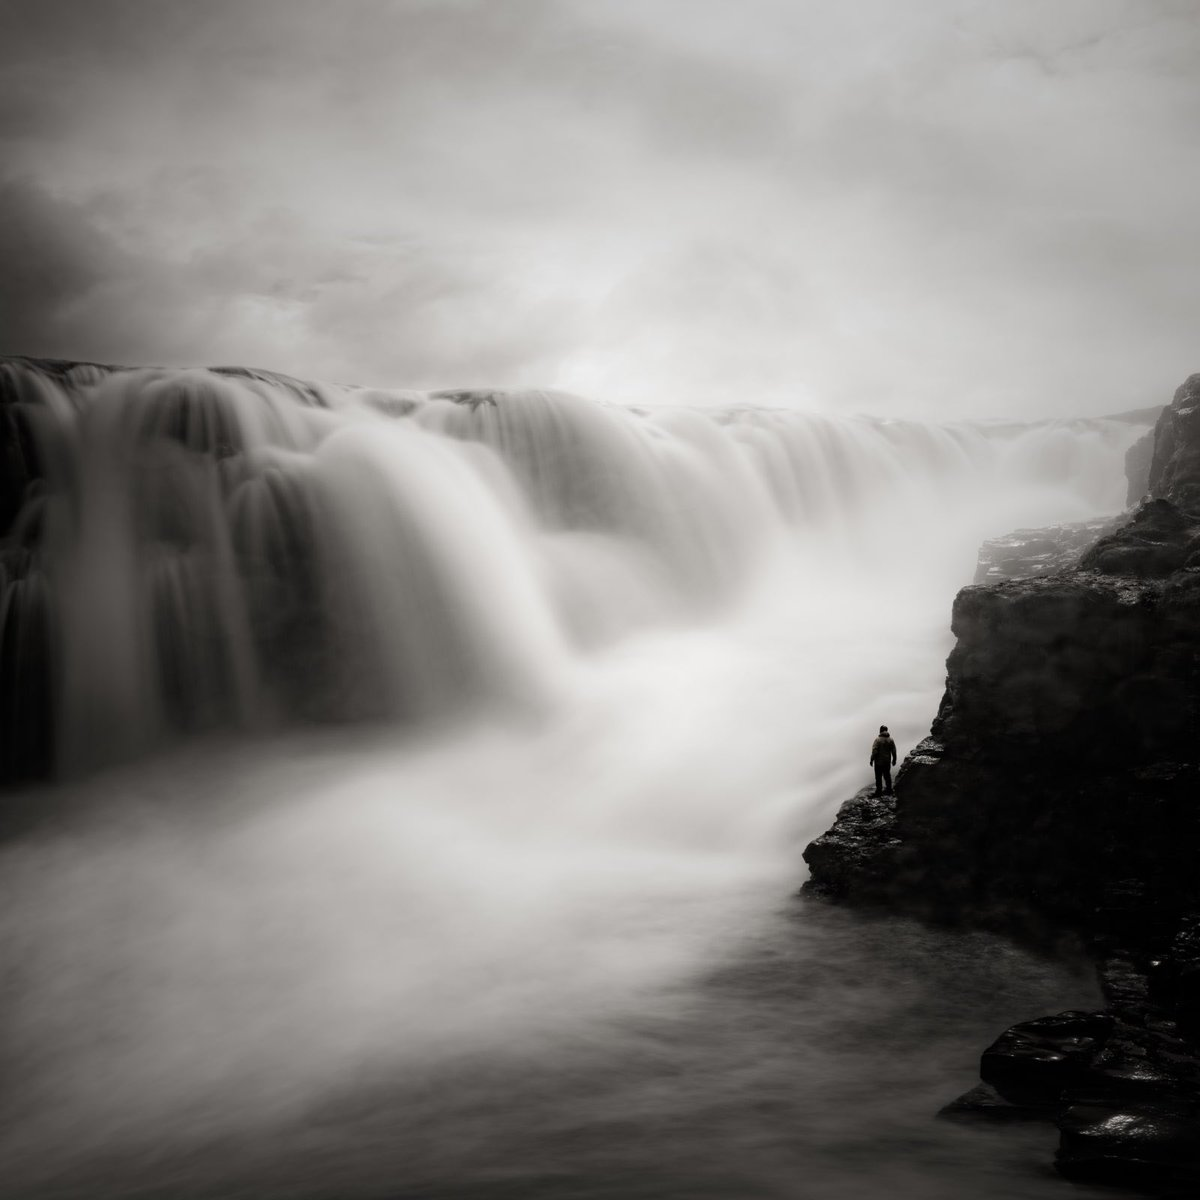 Figure and Waterfall, Iceland 2018 Jeffrey Conley, Photographer #photography pic.twitter.com/mMi2TLPBp6